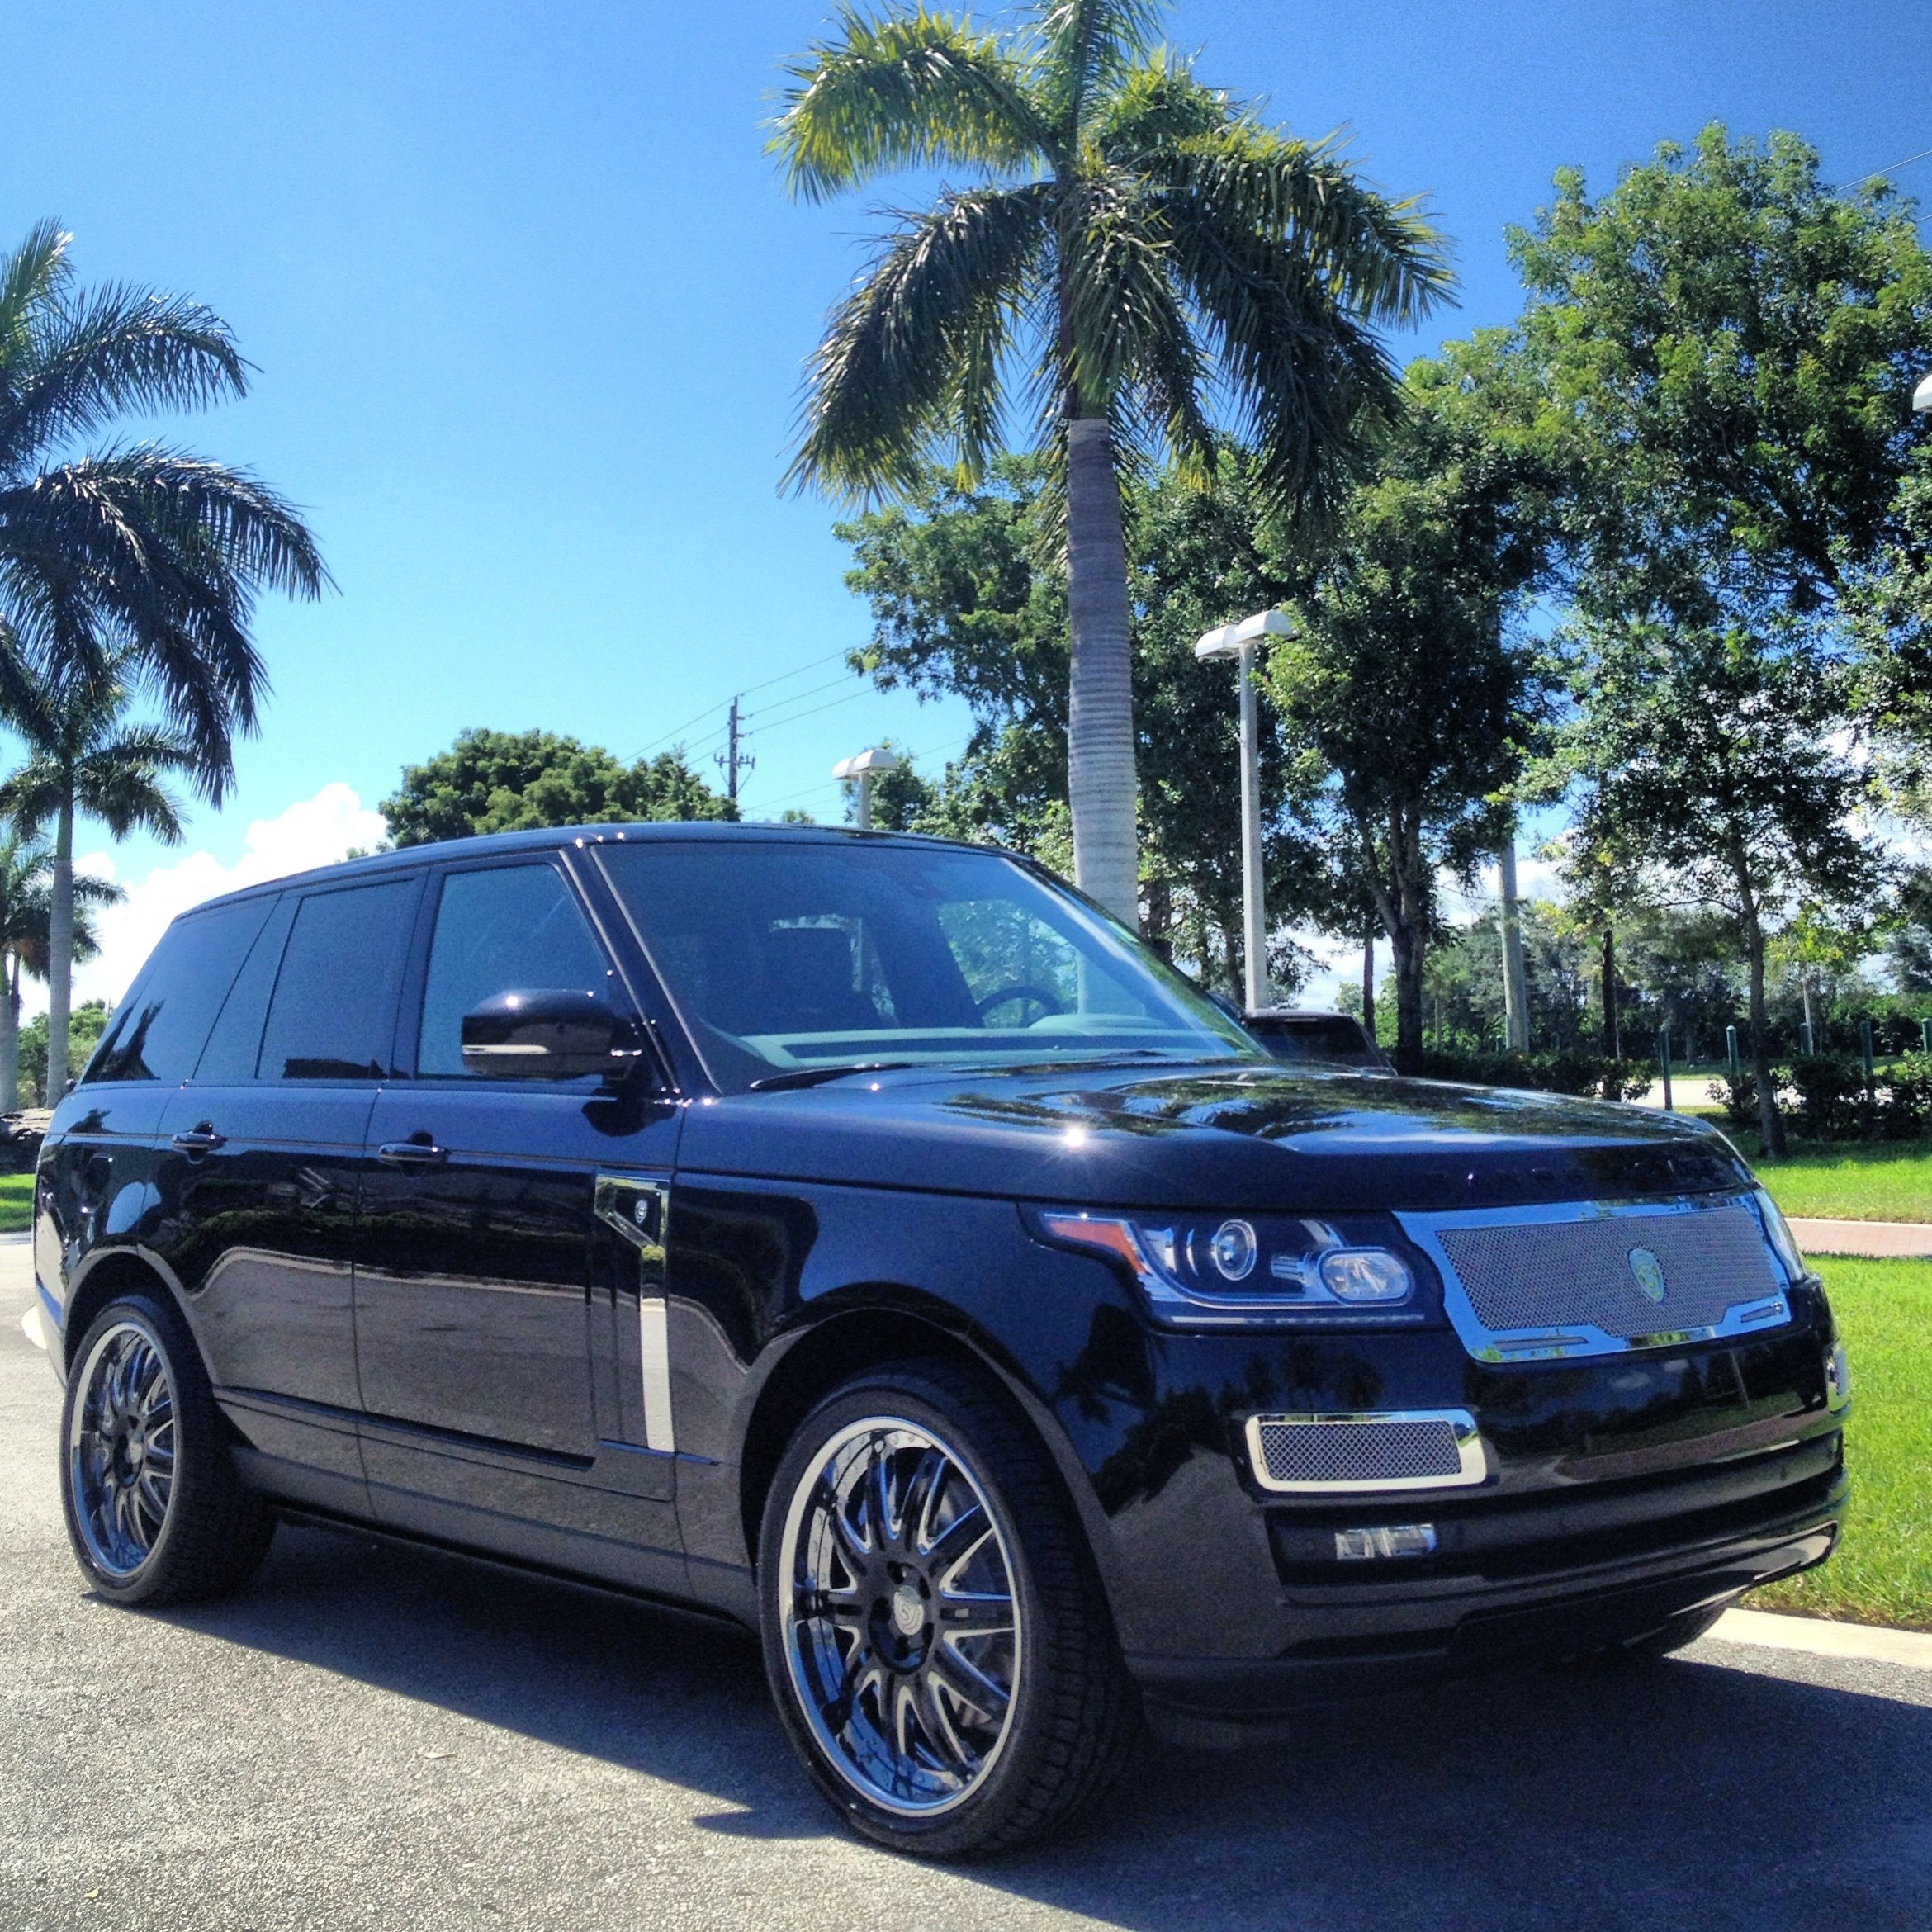 2014 Land Rover Range Rover with STRUT Collection